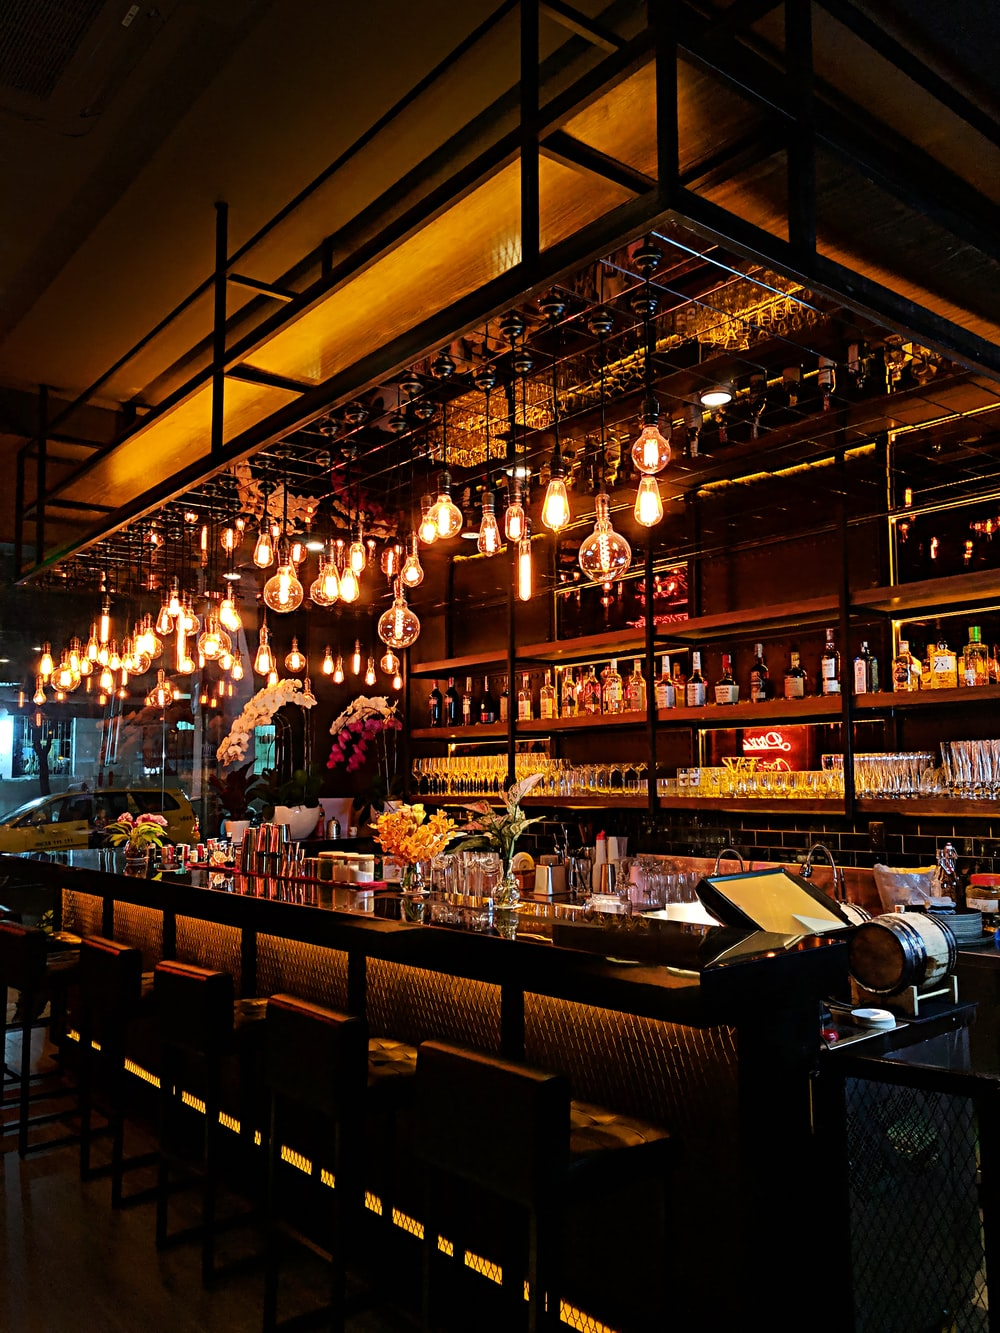 turned-on filament bulb lights at bar counter